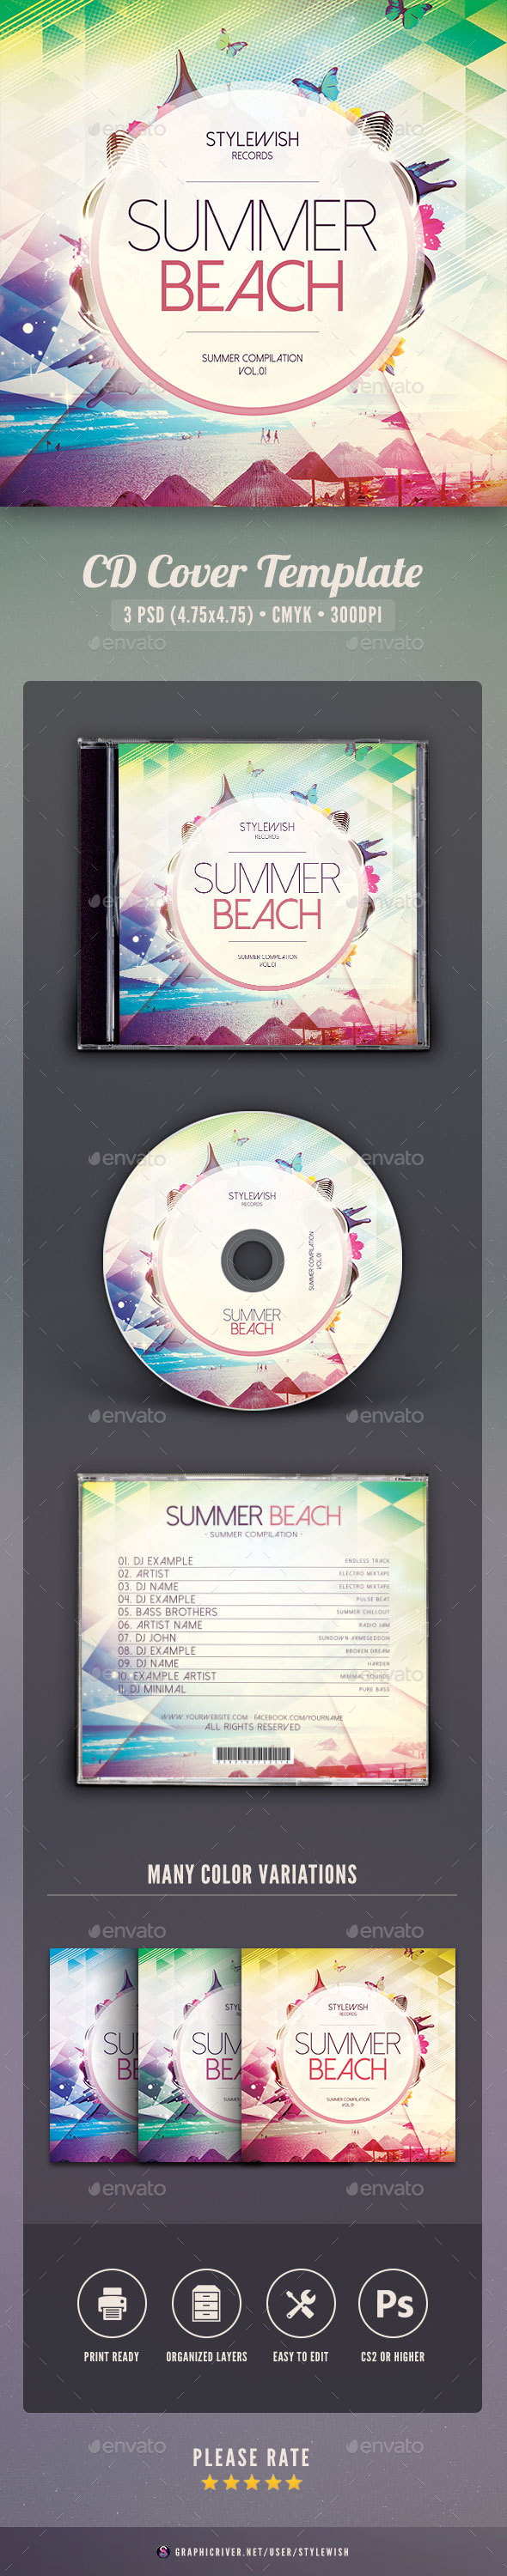 Summer Beach CD Cover Artwork - CD & DVD Artwork Print Templates